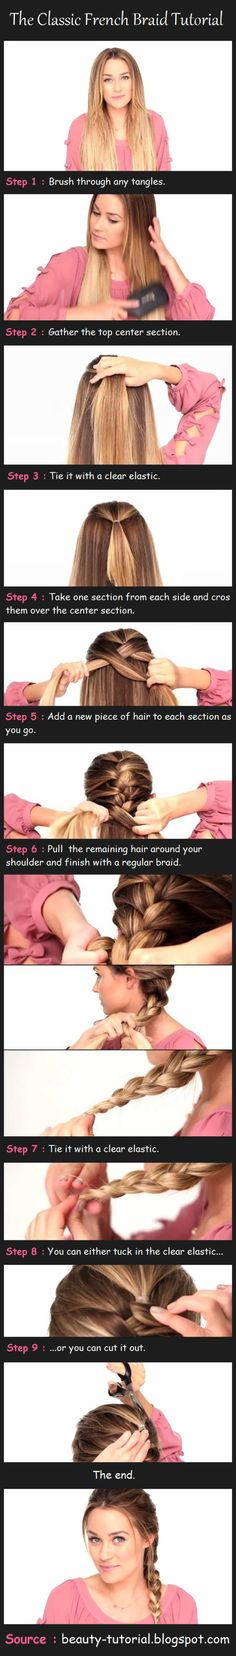 The Classic French Braid Tutorial; I'll finally be able to do a french braid on myself... maybe